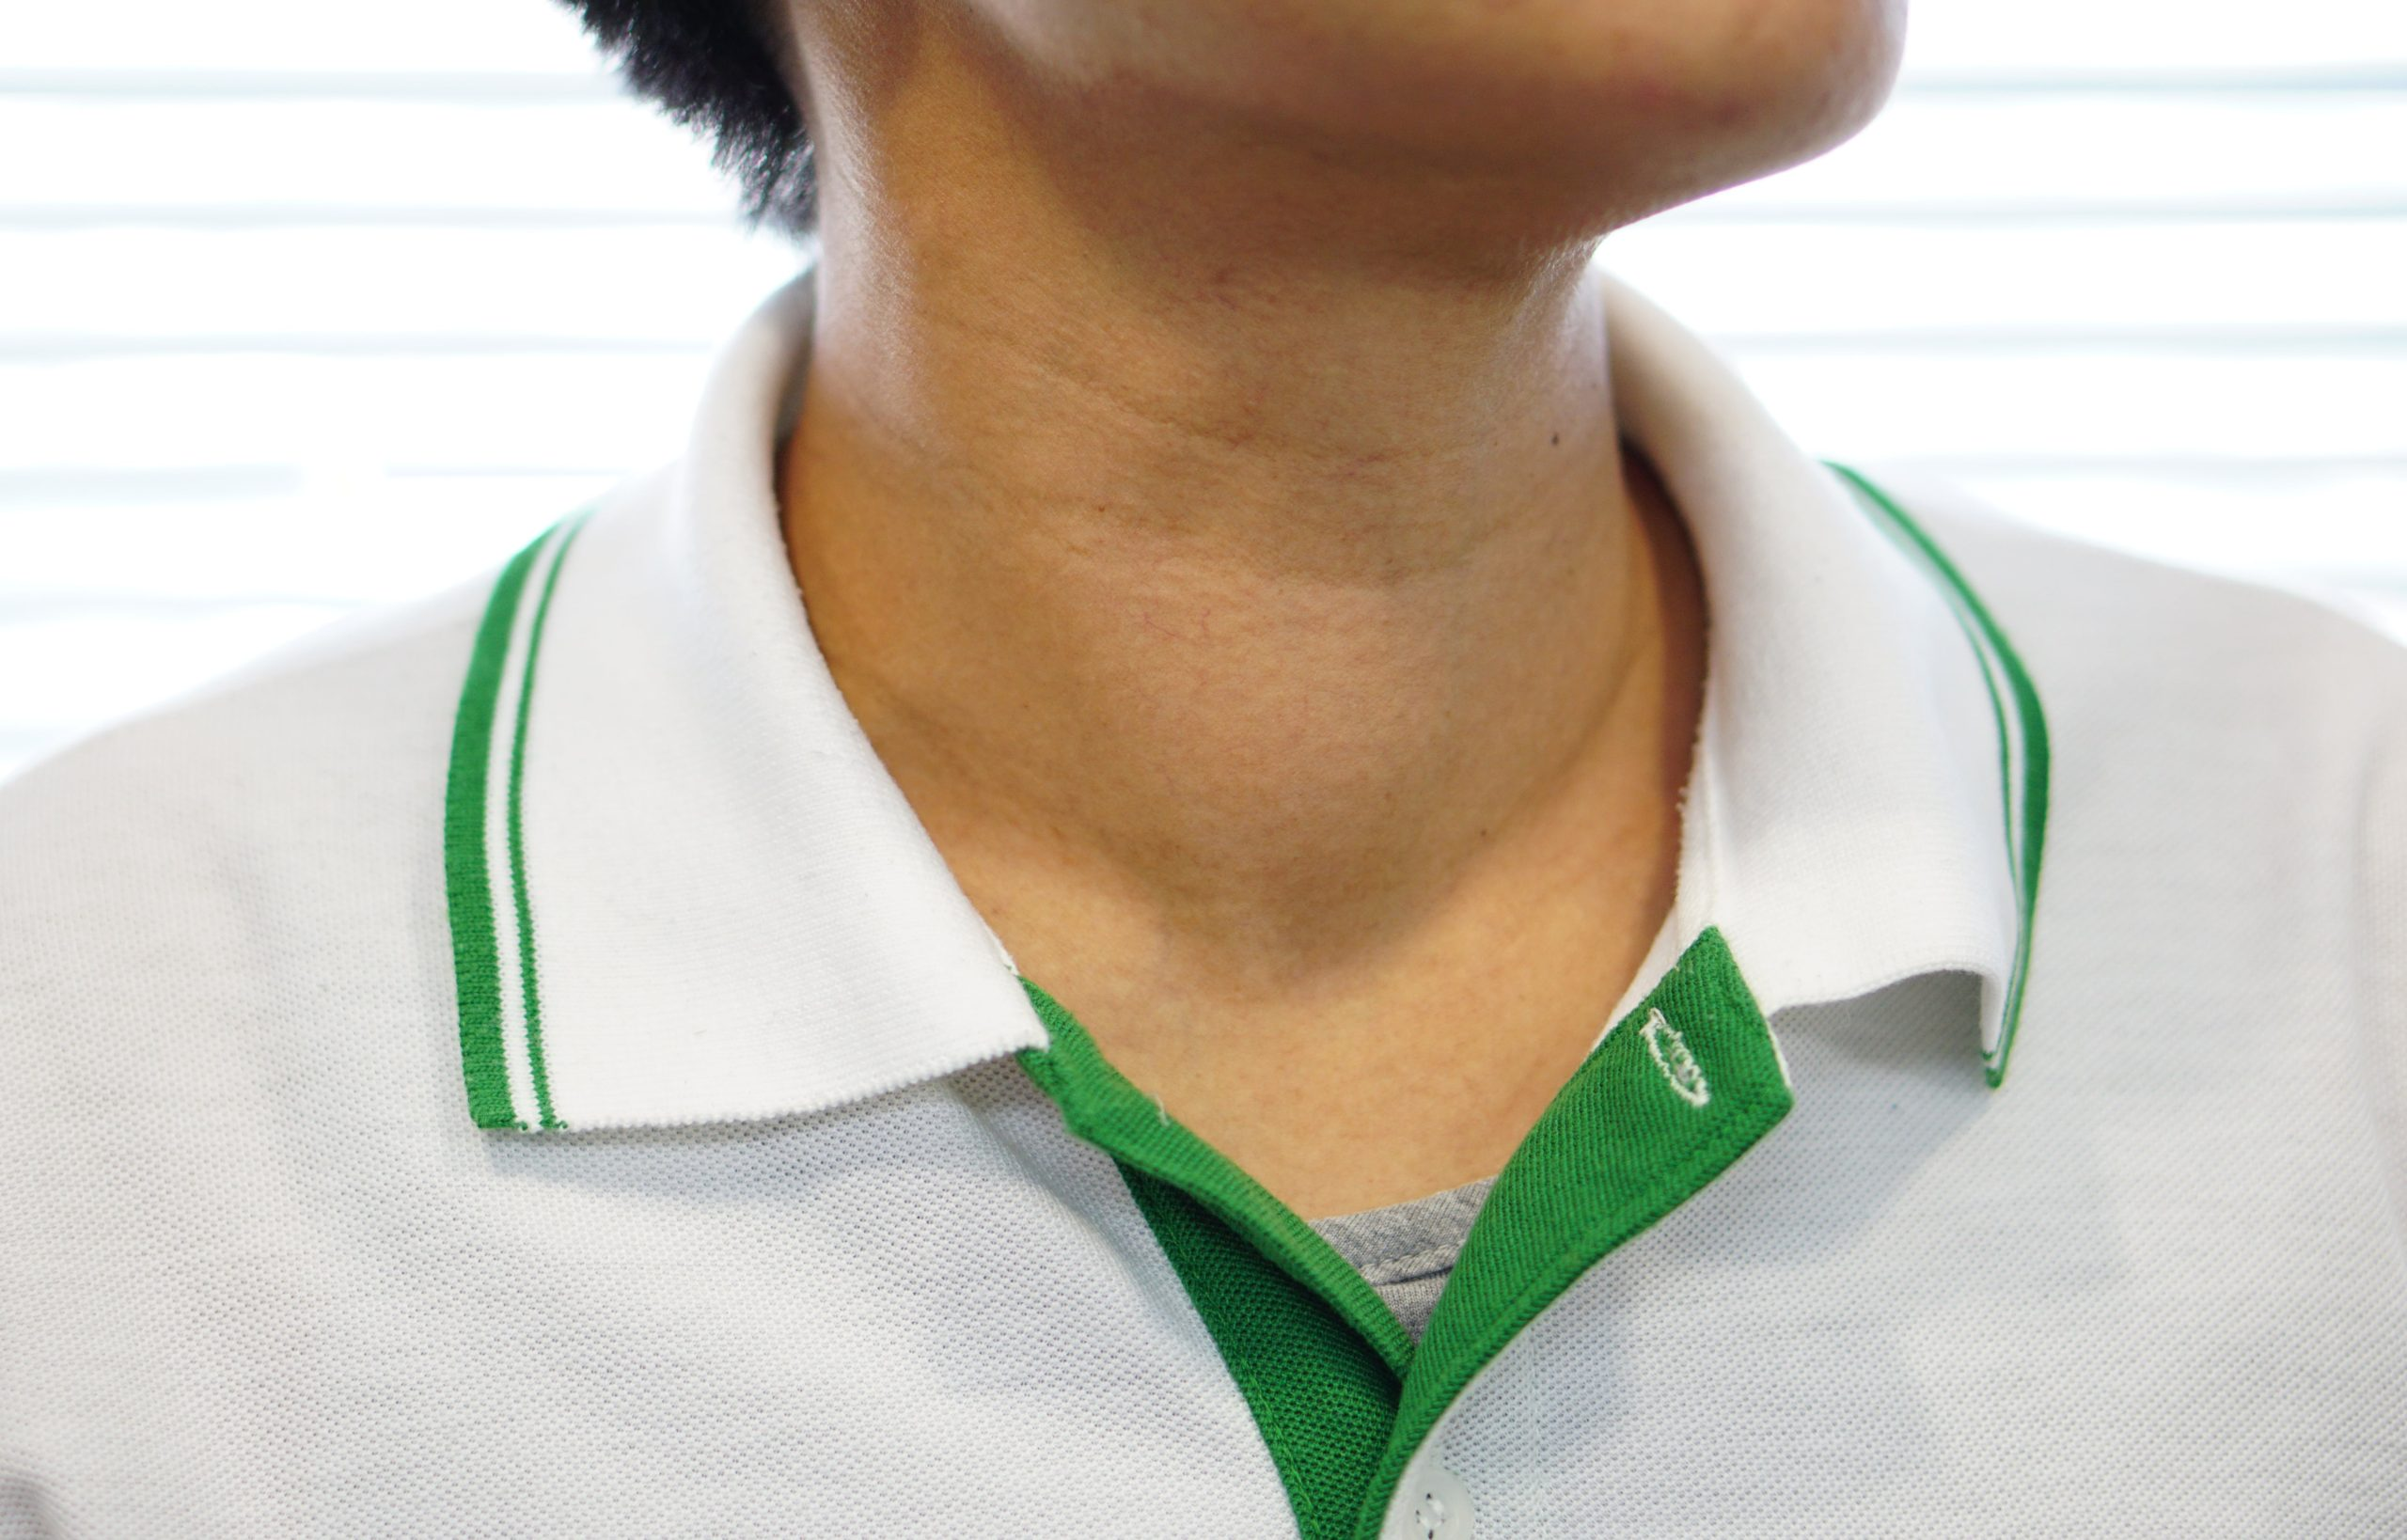 Thyroid symptoms - swelling of the neck